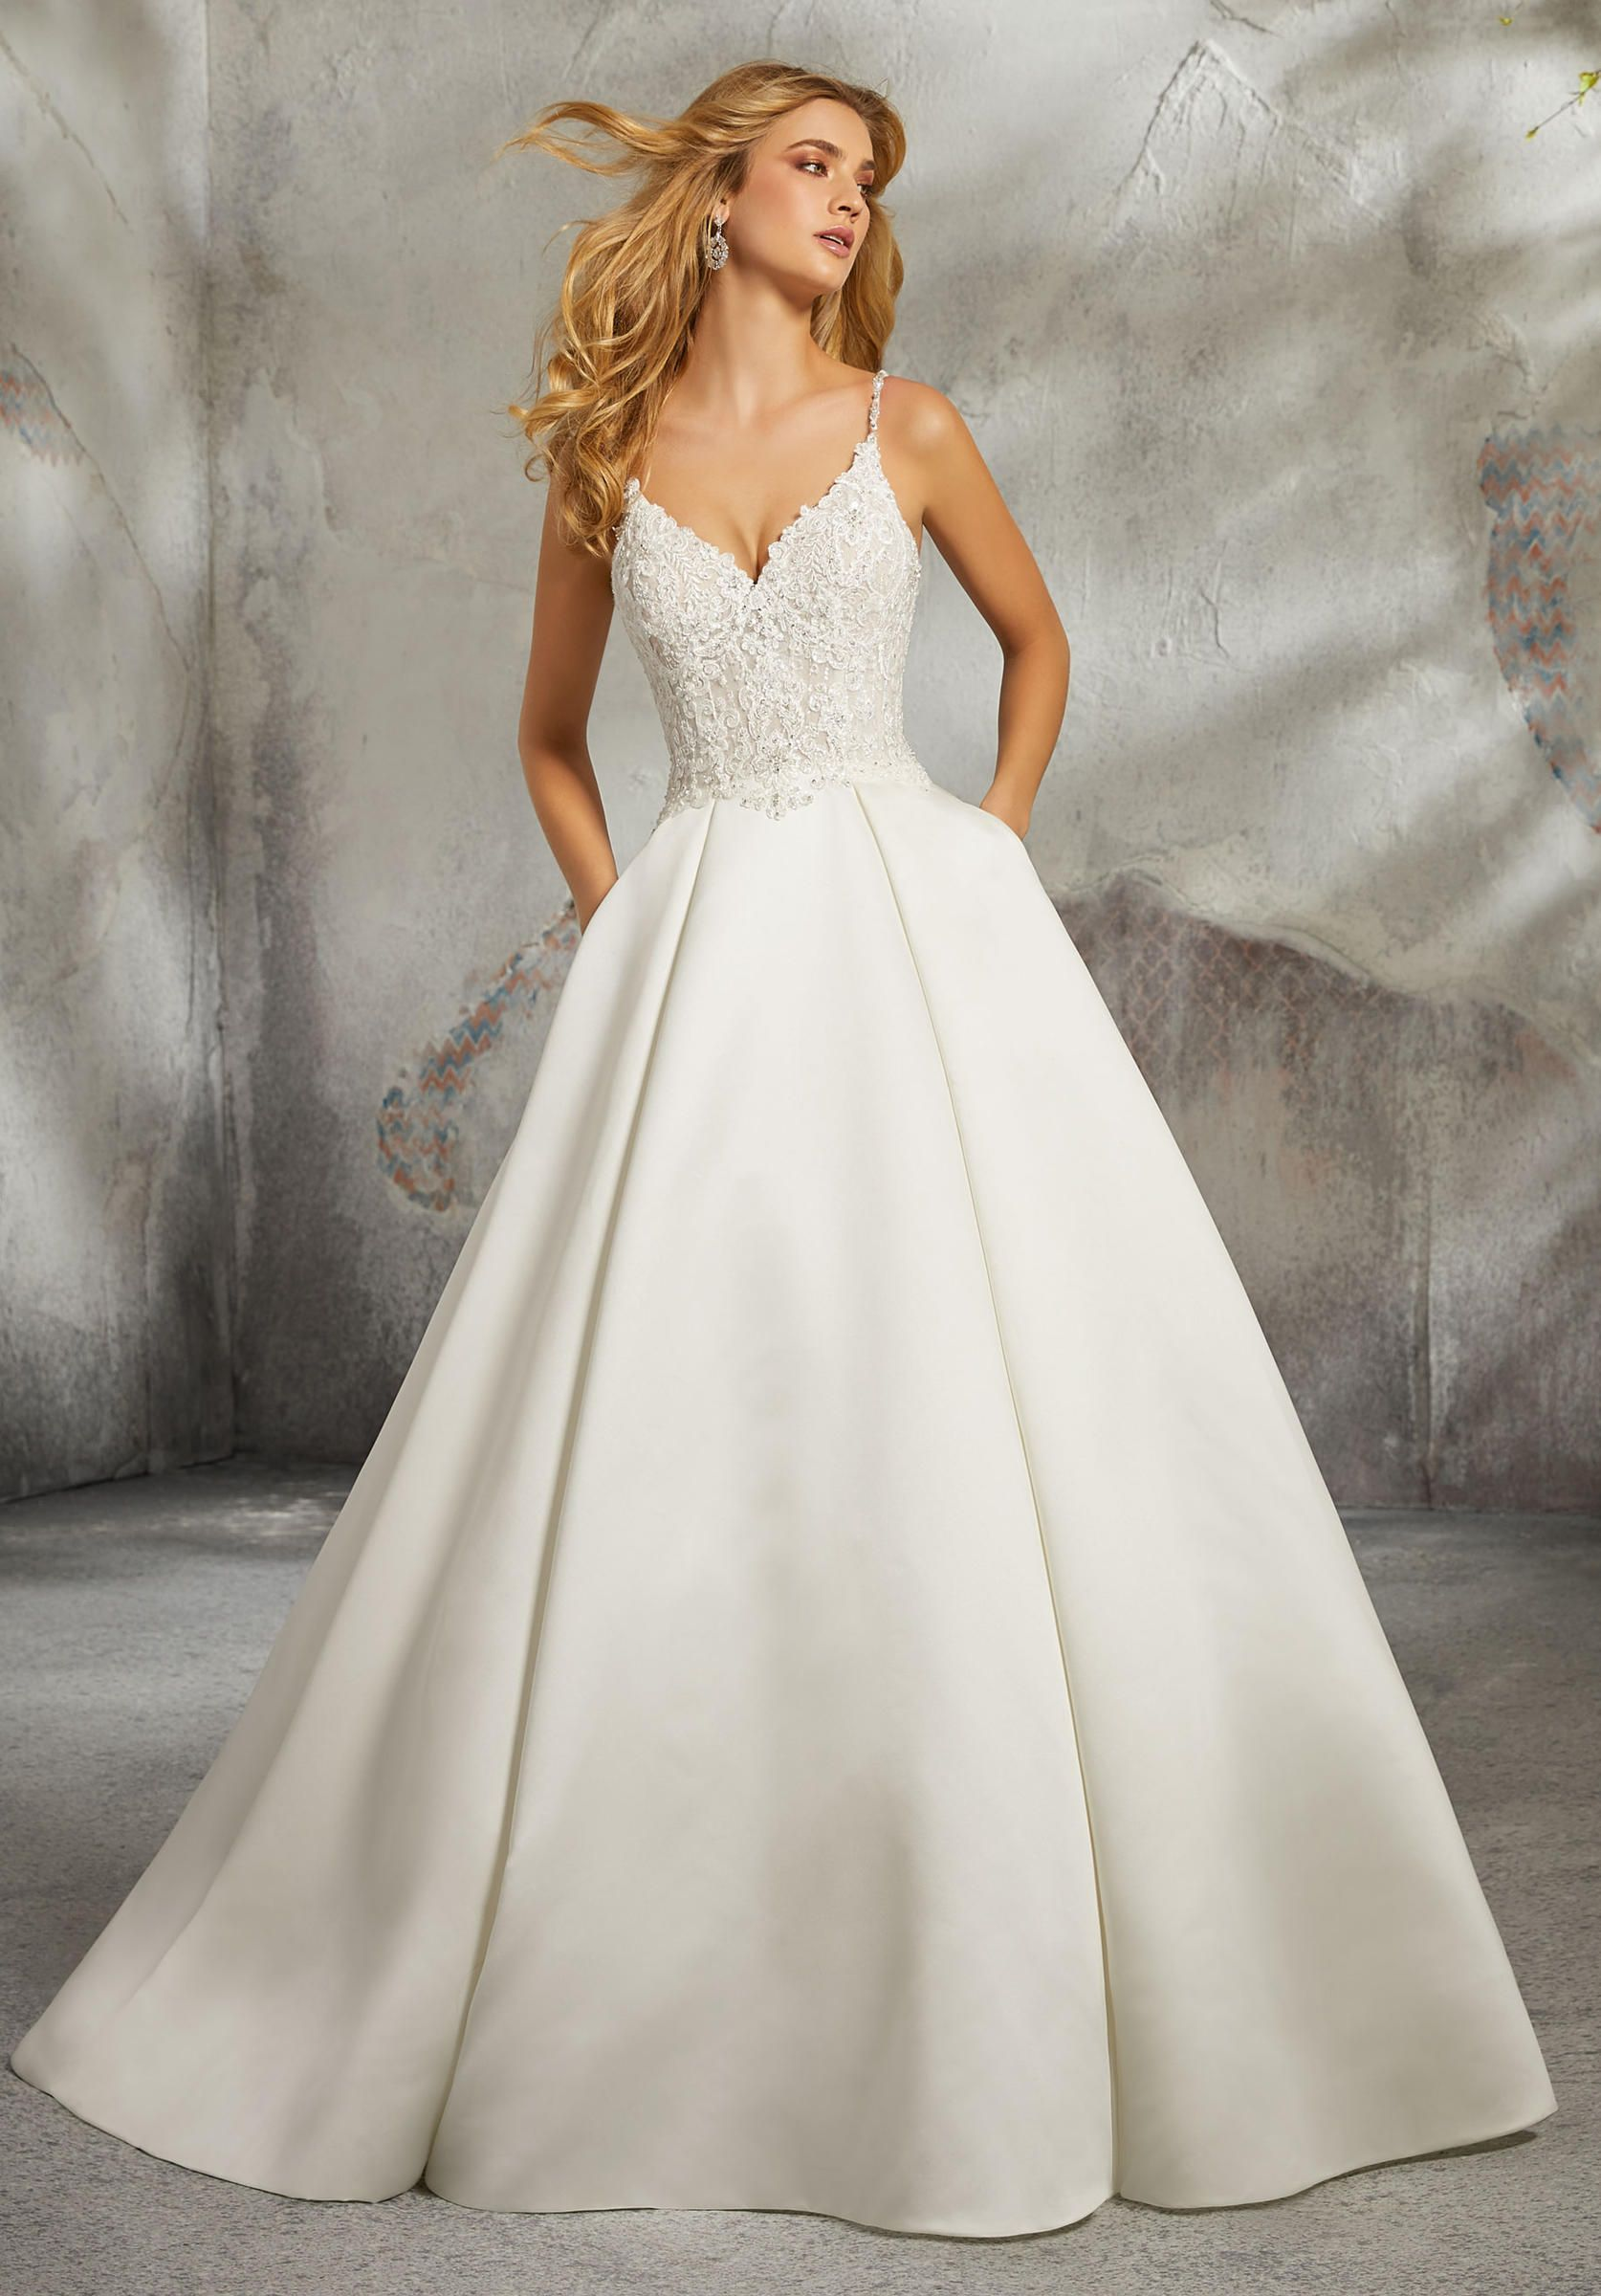 Morilee Wedding Dresses 8272 in 2020 Ball gown wedding